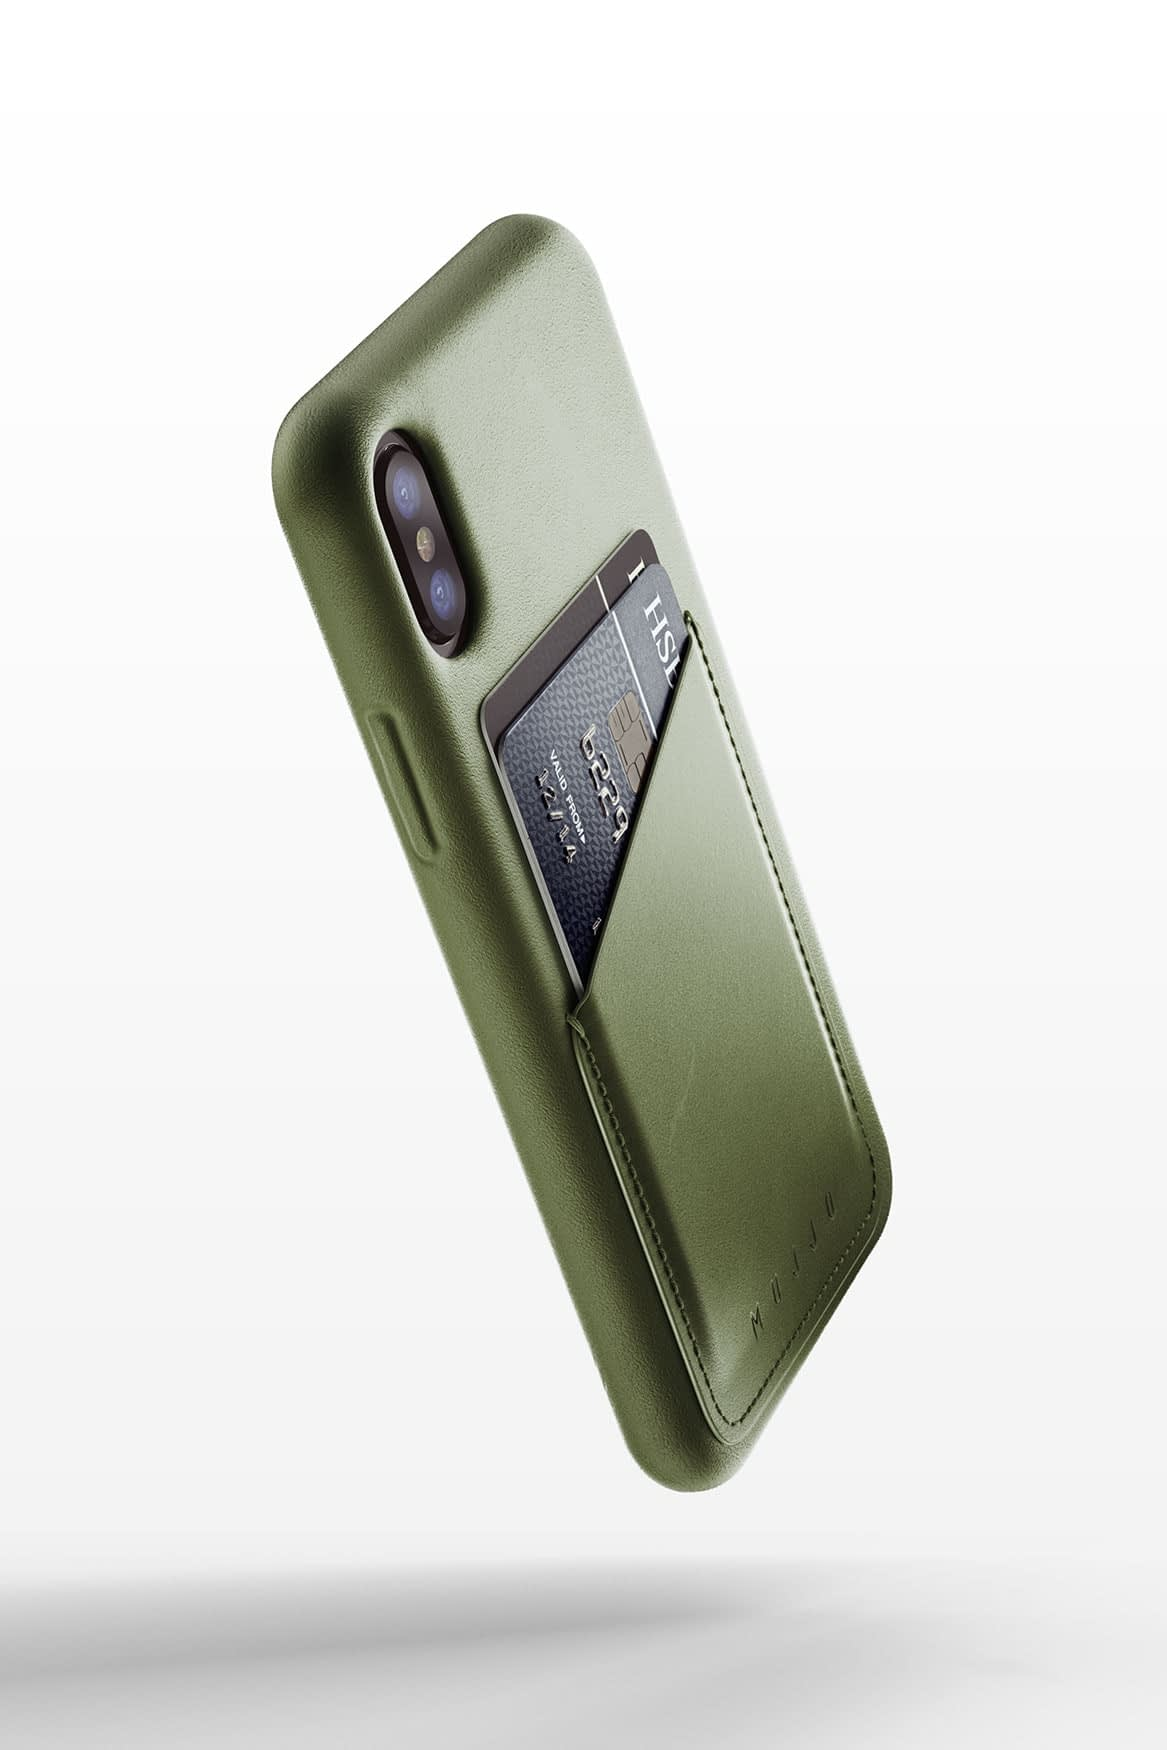 Full leather wallet case for iphone x Olive 02